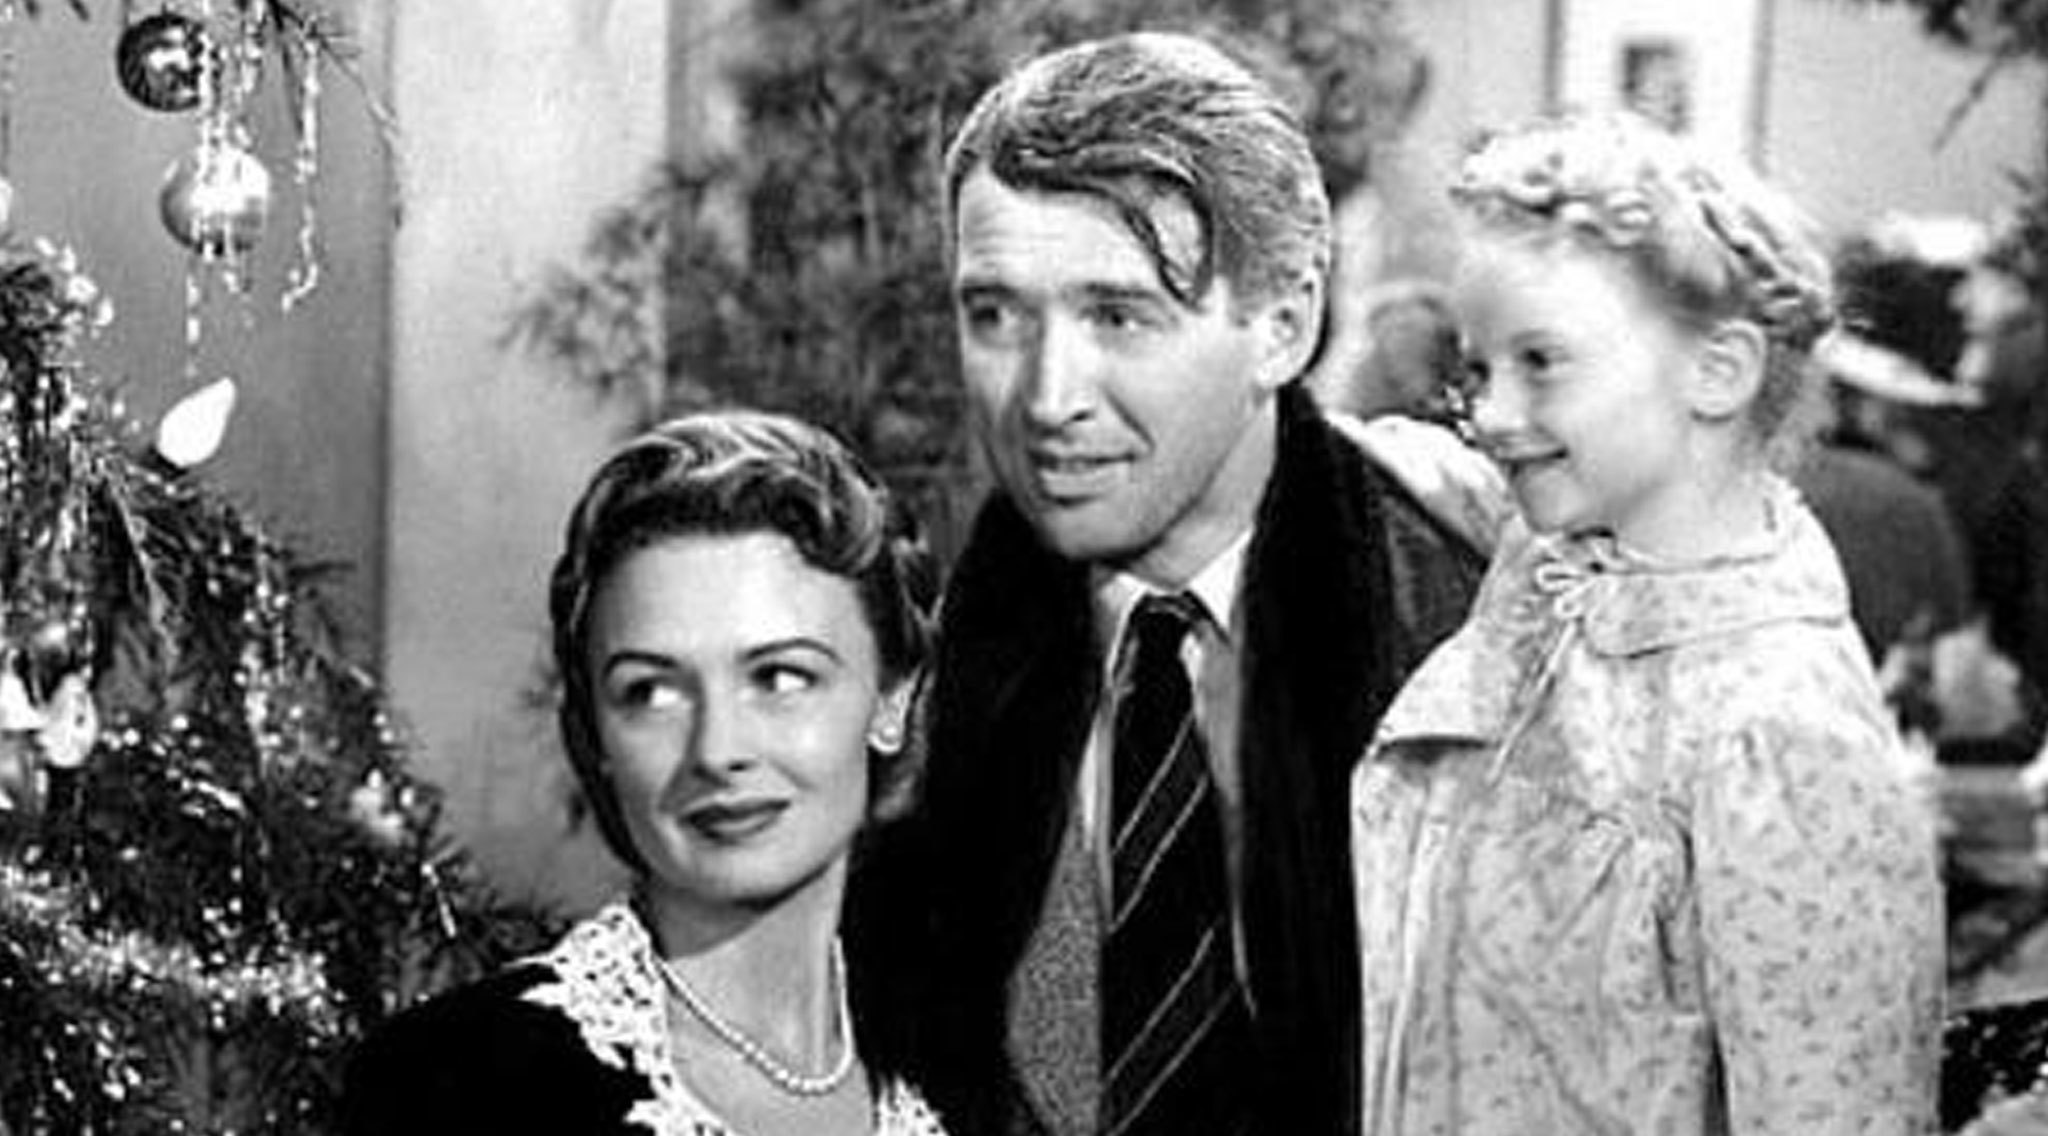 5 places to watch 'It's a Wonderful Life' in London this Christmas